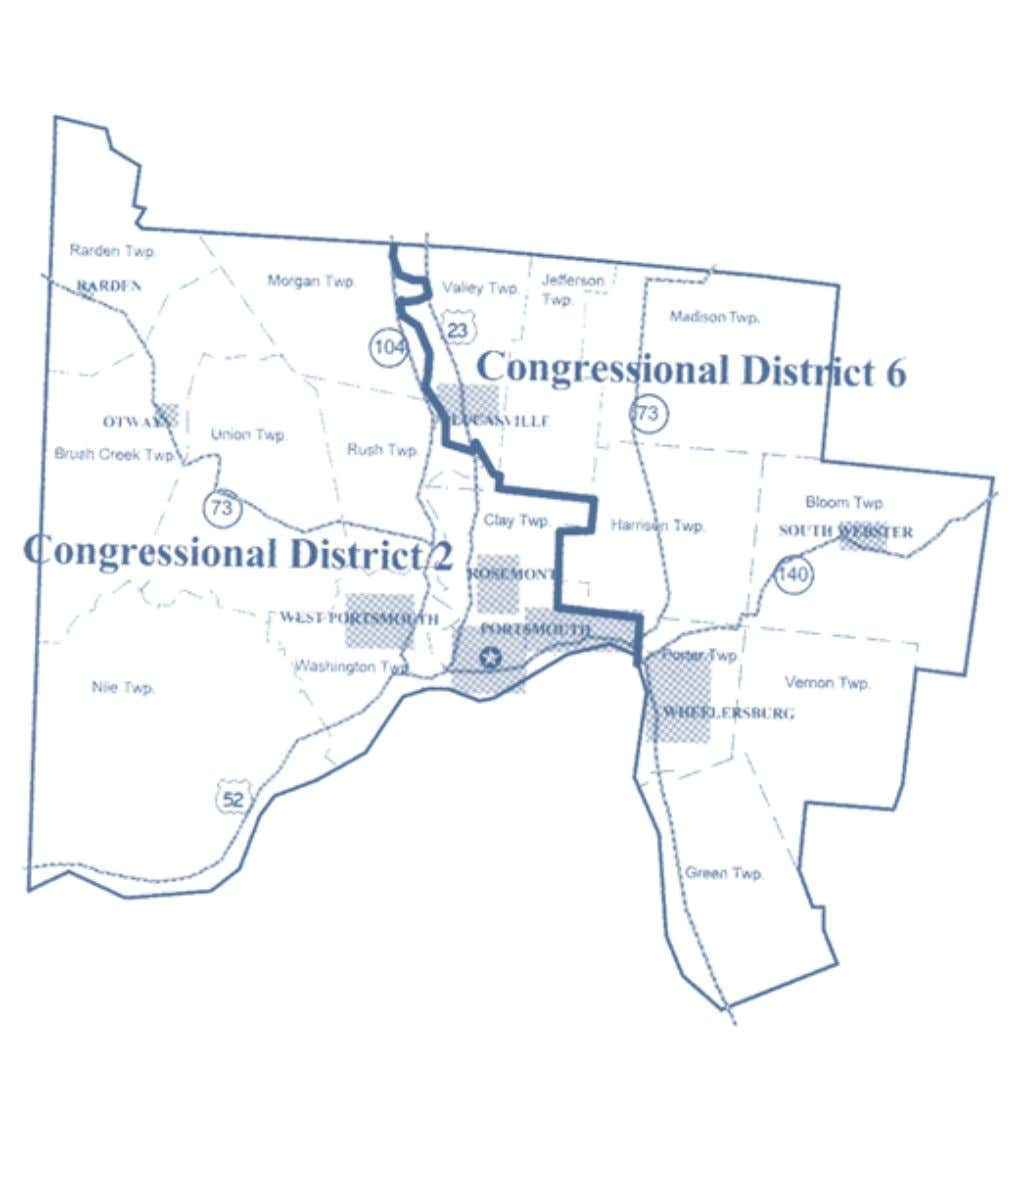 2002-2012 OhiO District Maps Scioto County Congressional Districts 22 Office of the Ohio Secretary of State